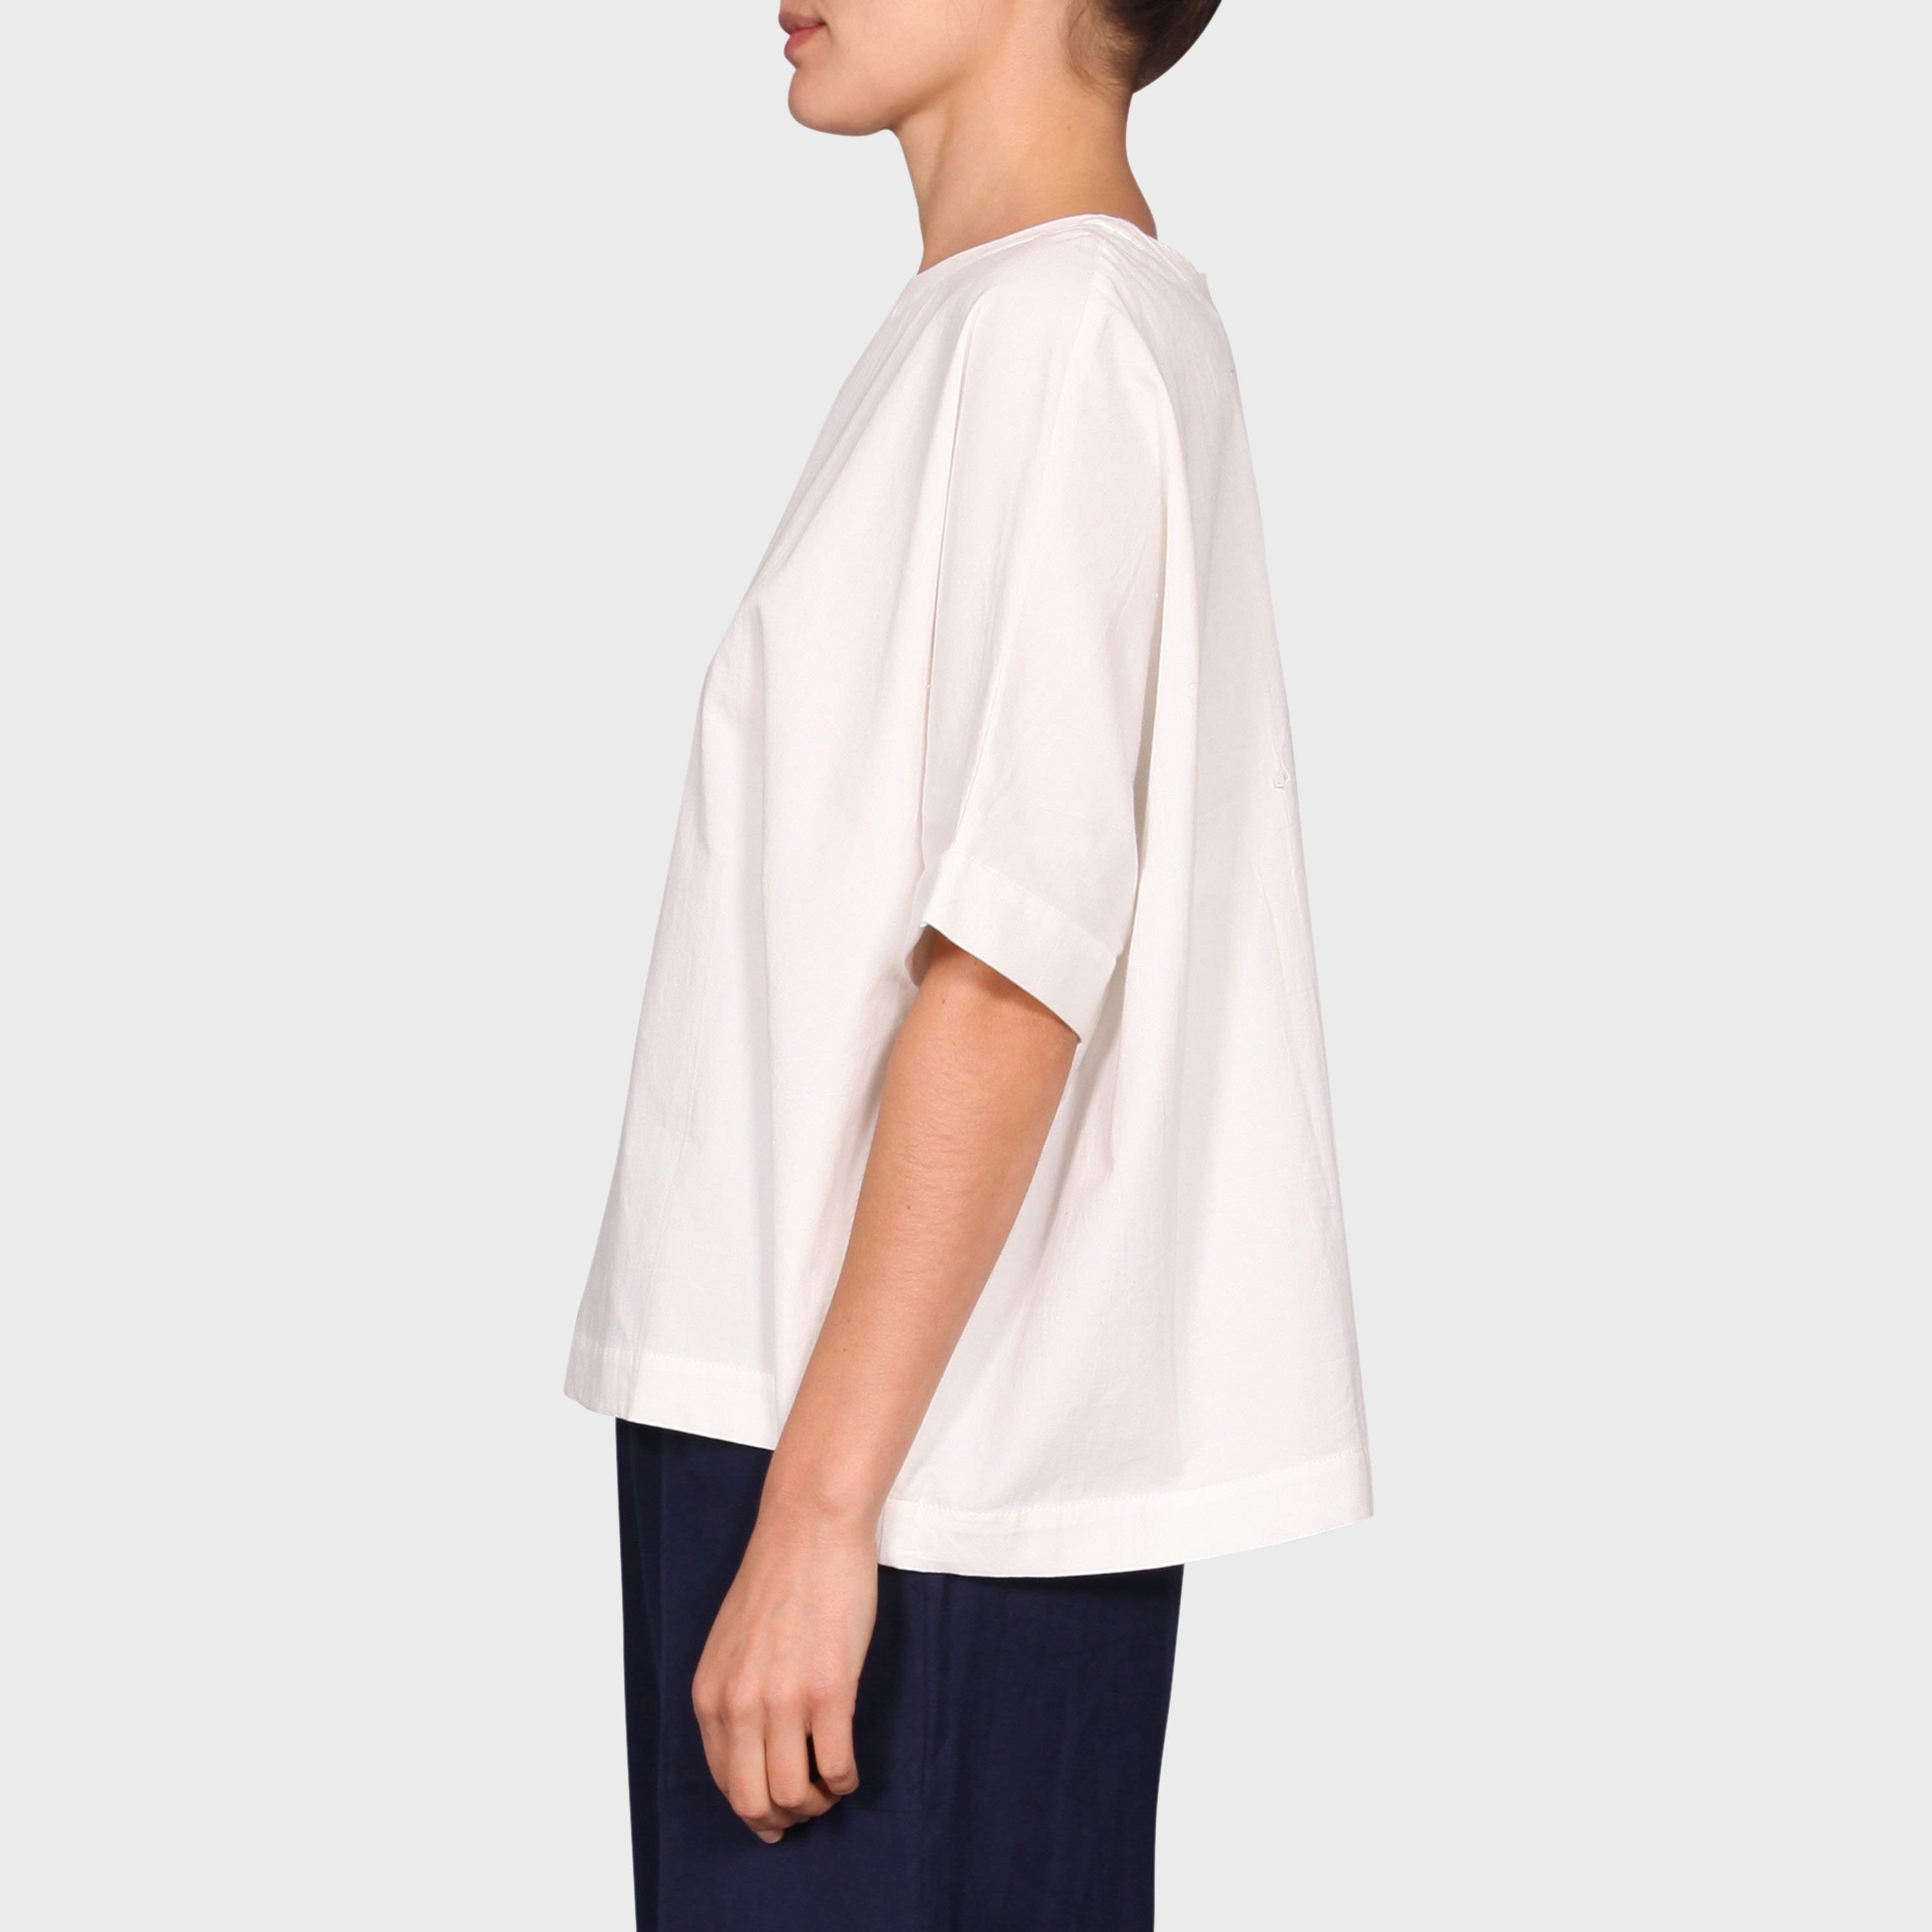 KIYO TOP / WHITE